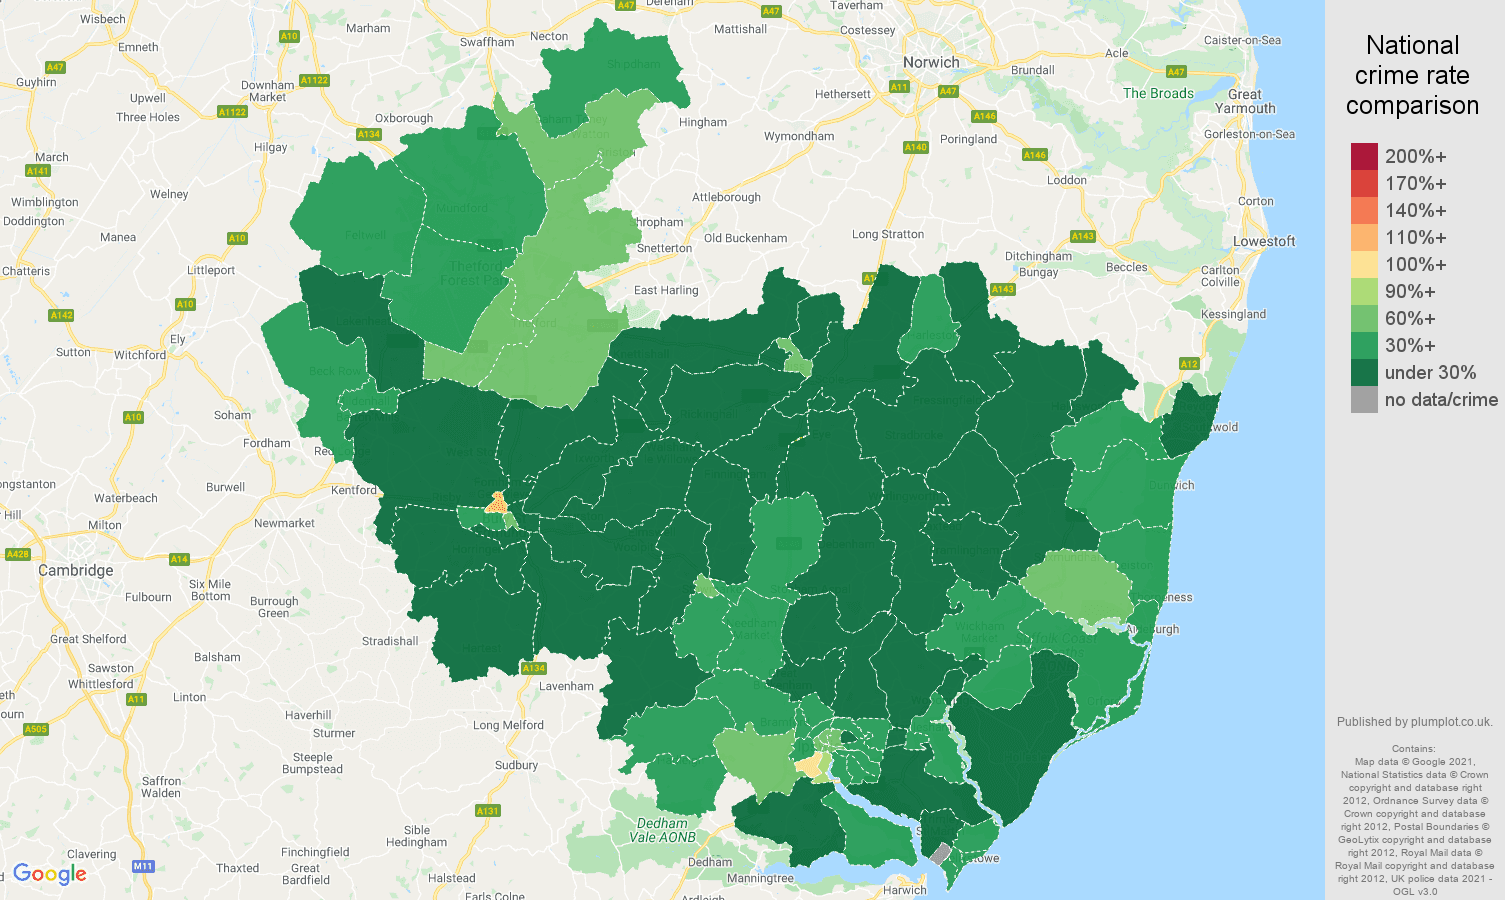 Ipswich antisocial behaviour crime rate comparison map